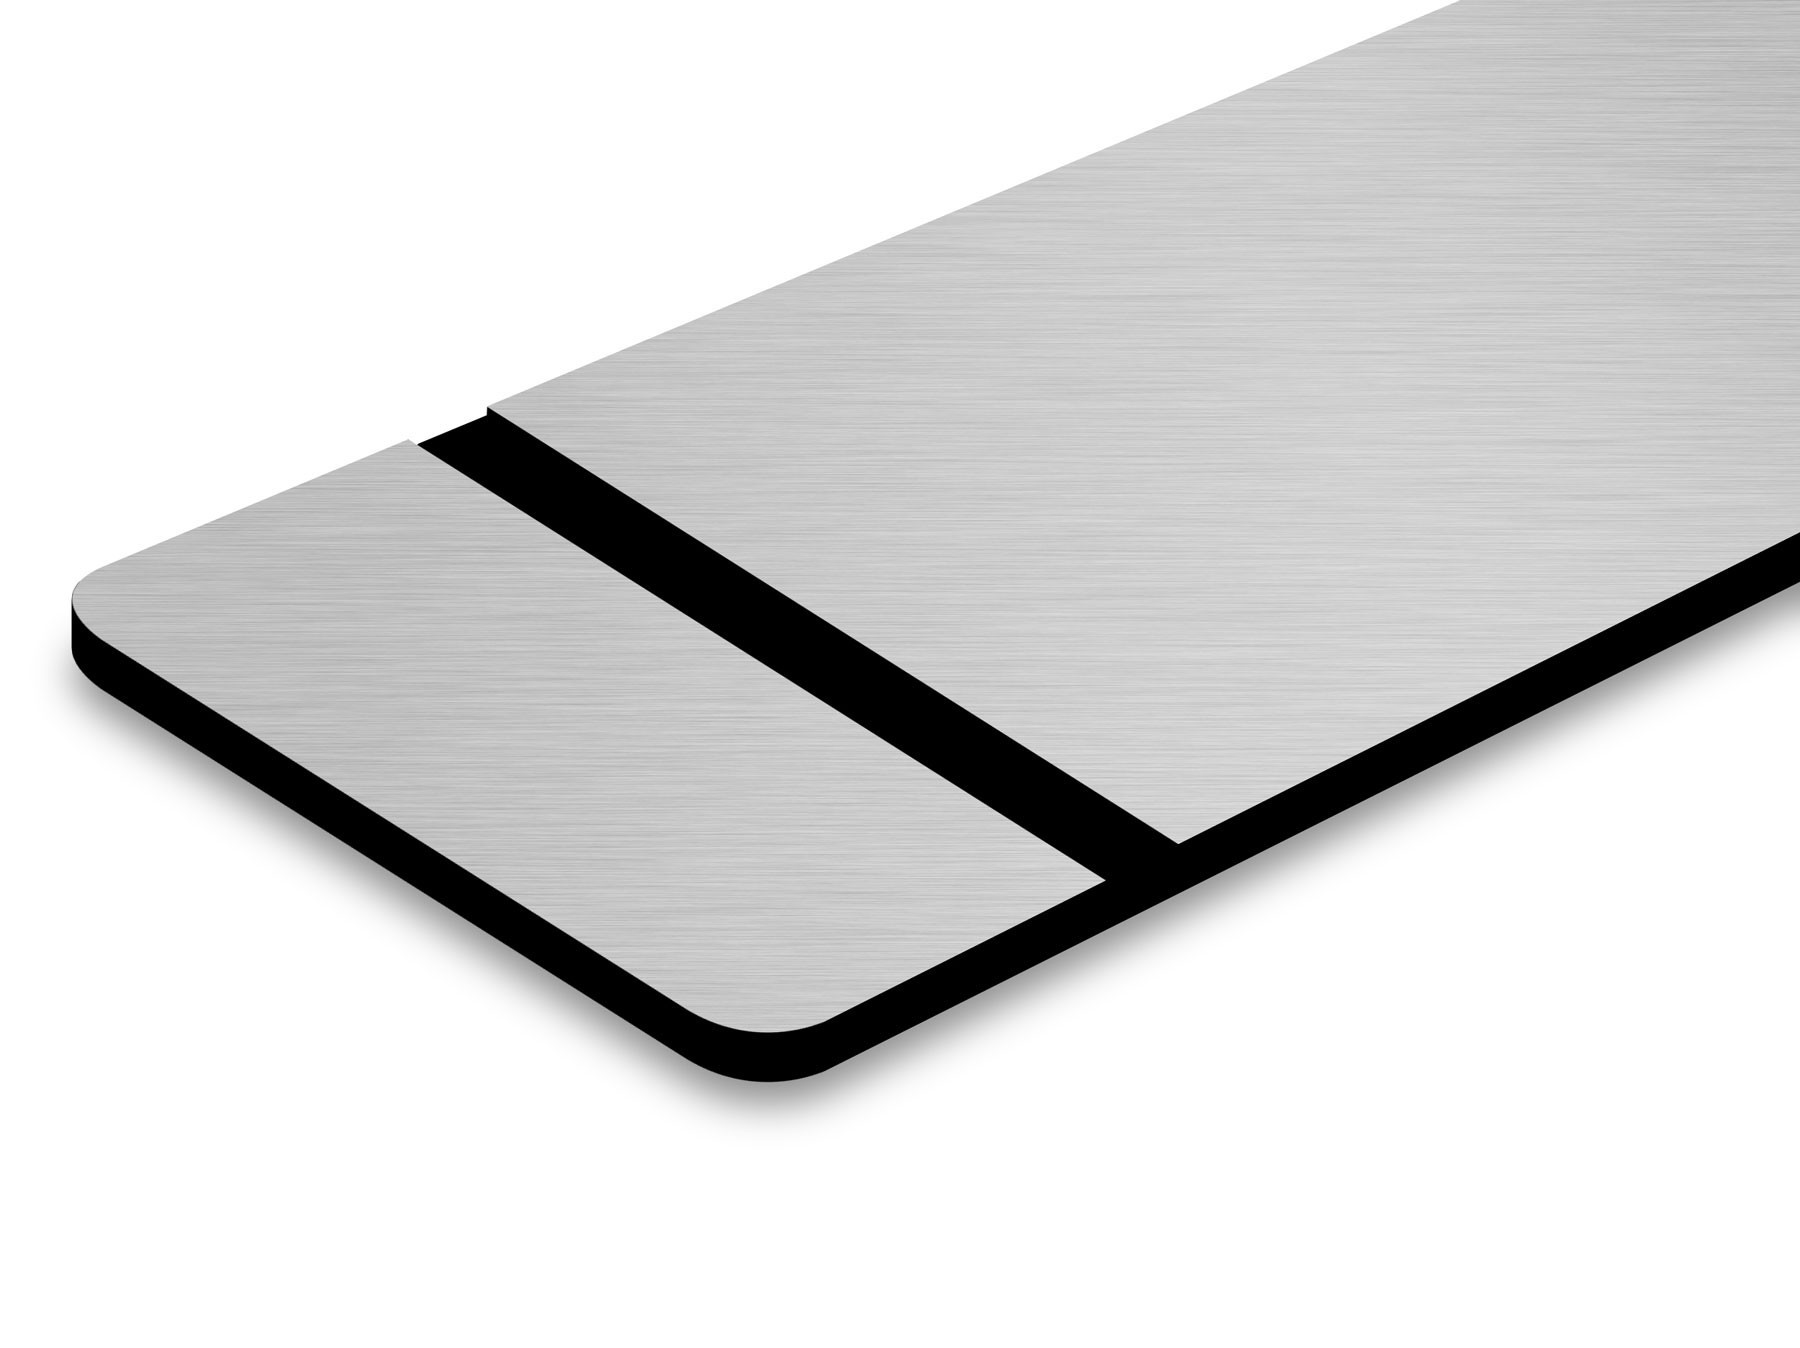 TroLase Metallic, Brushed Aluminium/Black, 2ply, 0.8 mm